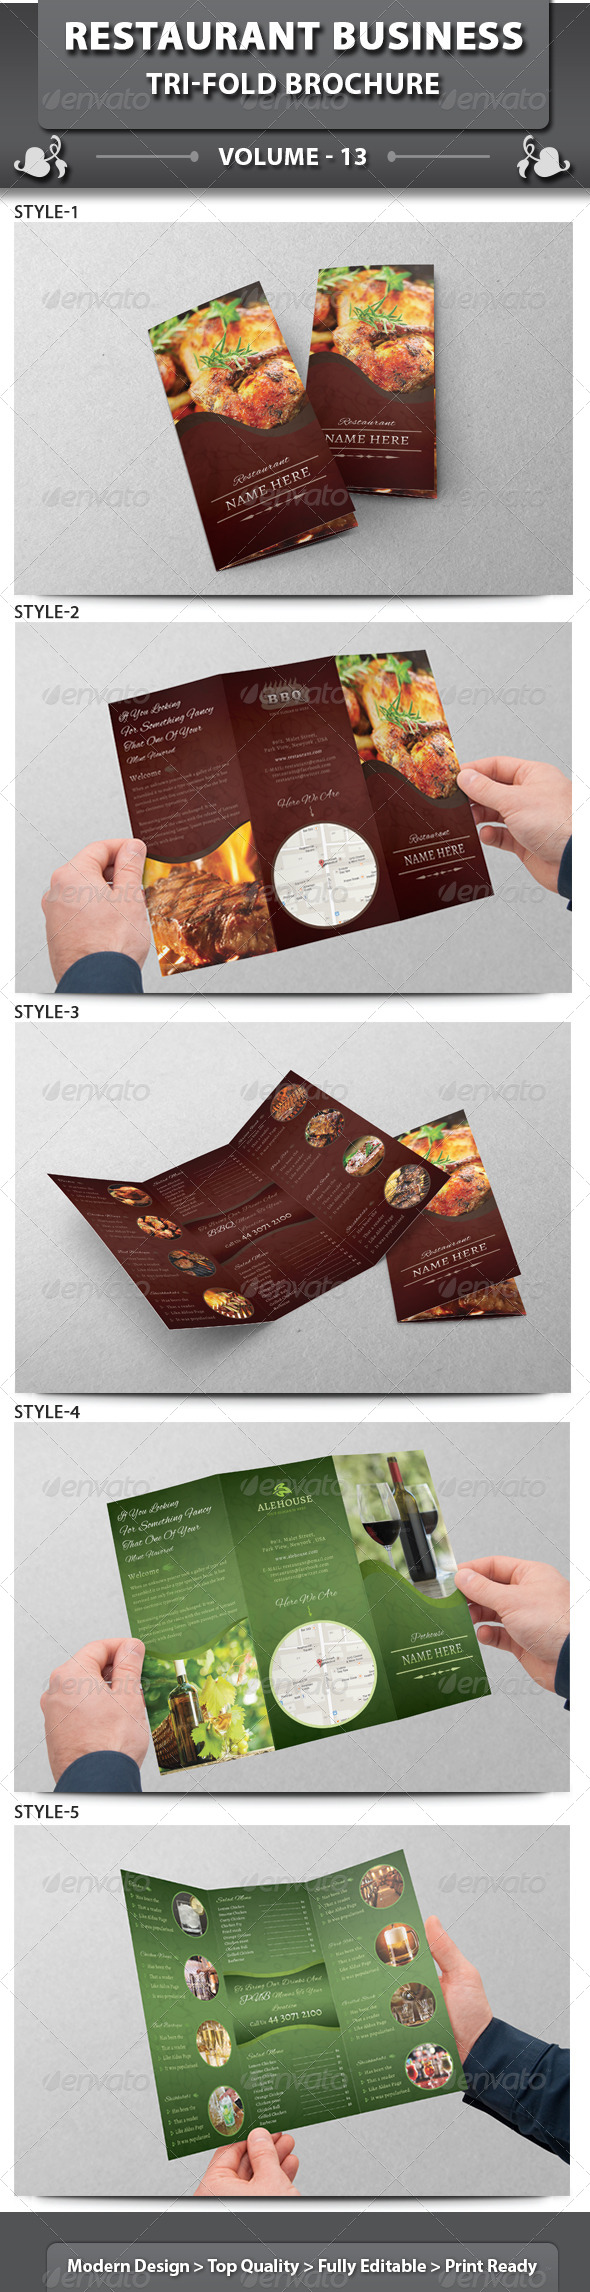 GraphicRiver Restaurant Business Tri-fold Brochure Volume 13 6613721